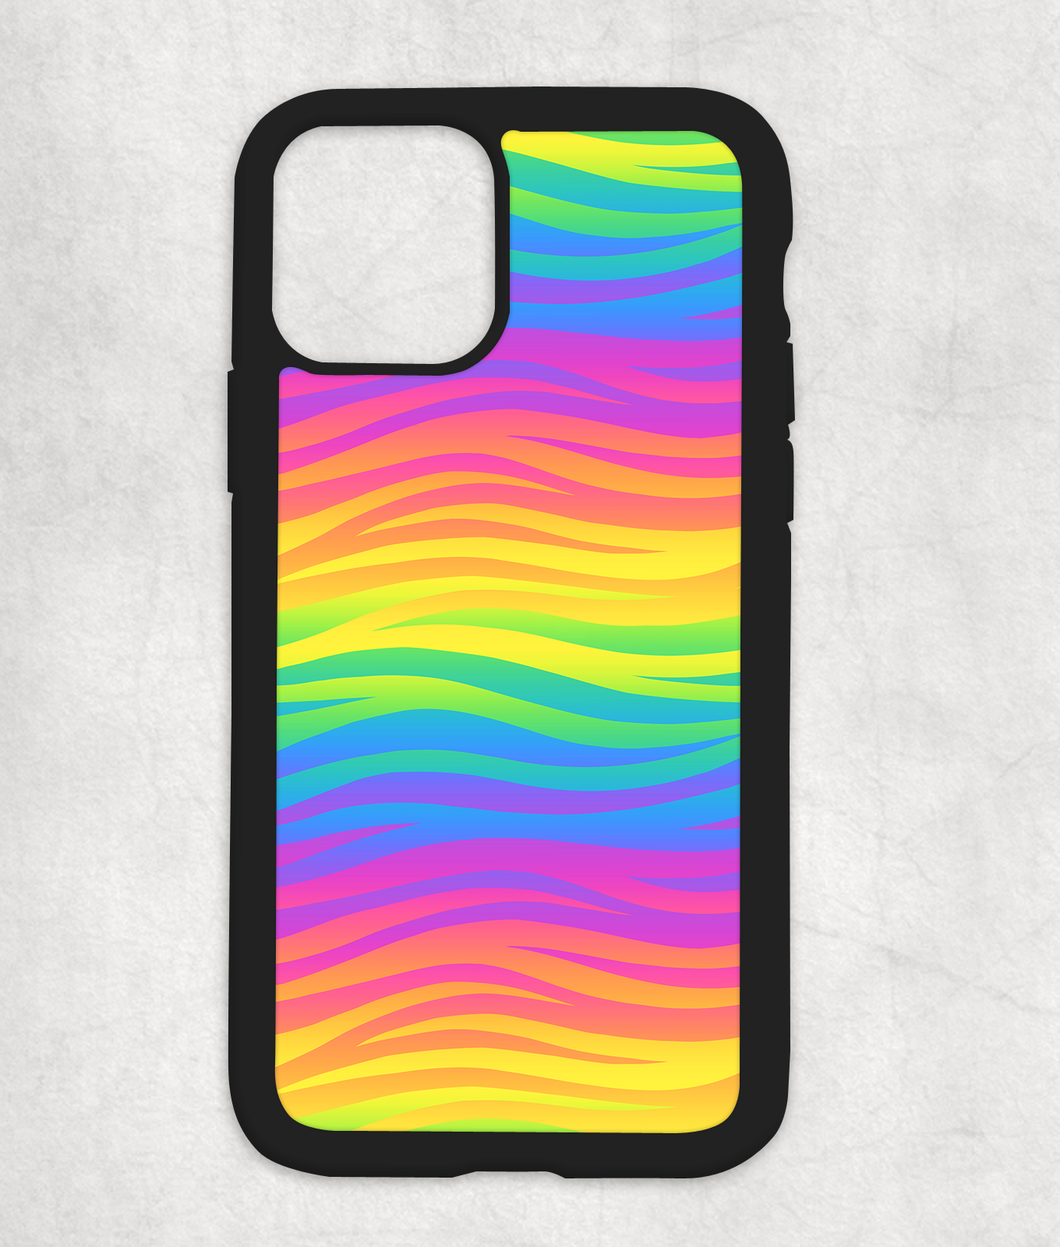 Phone Case Design | #1 - VinylsGalore